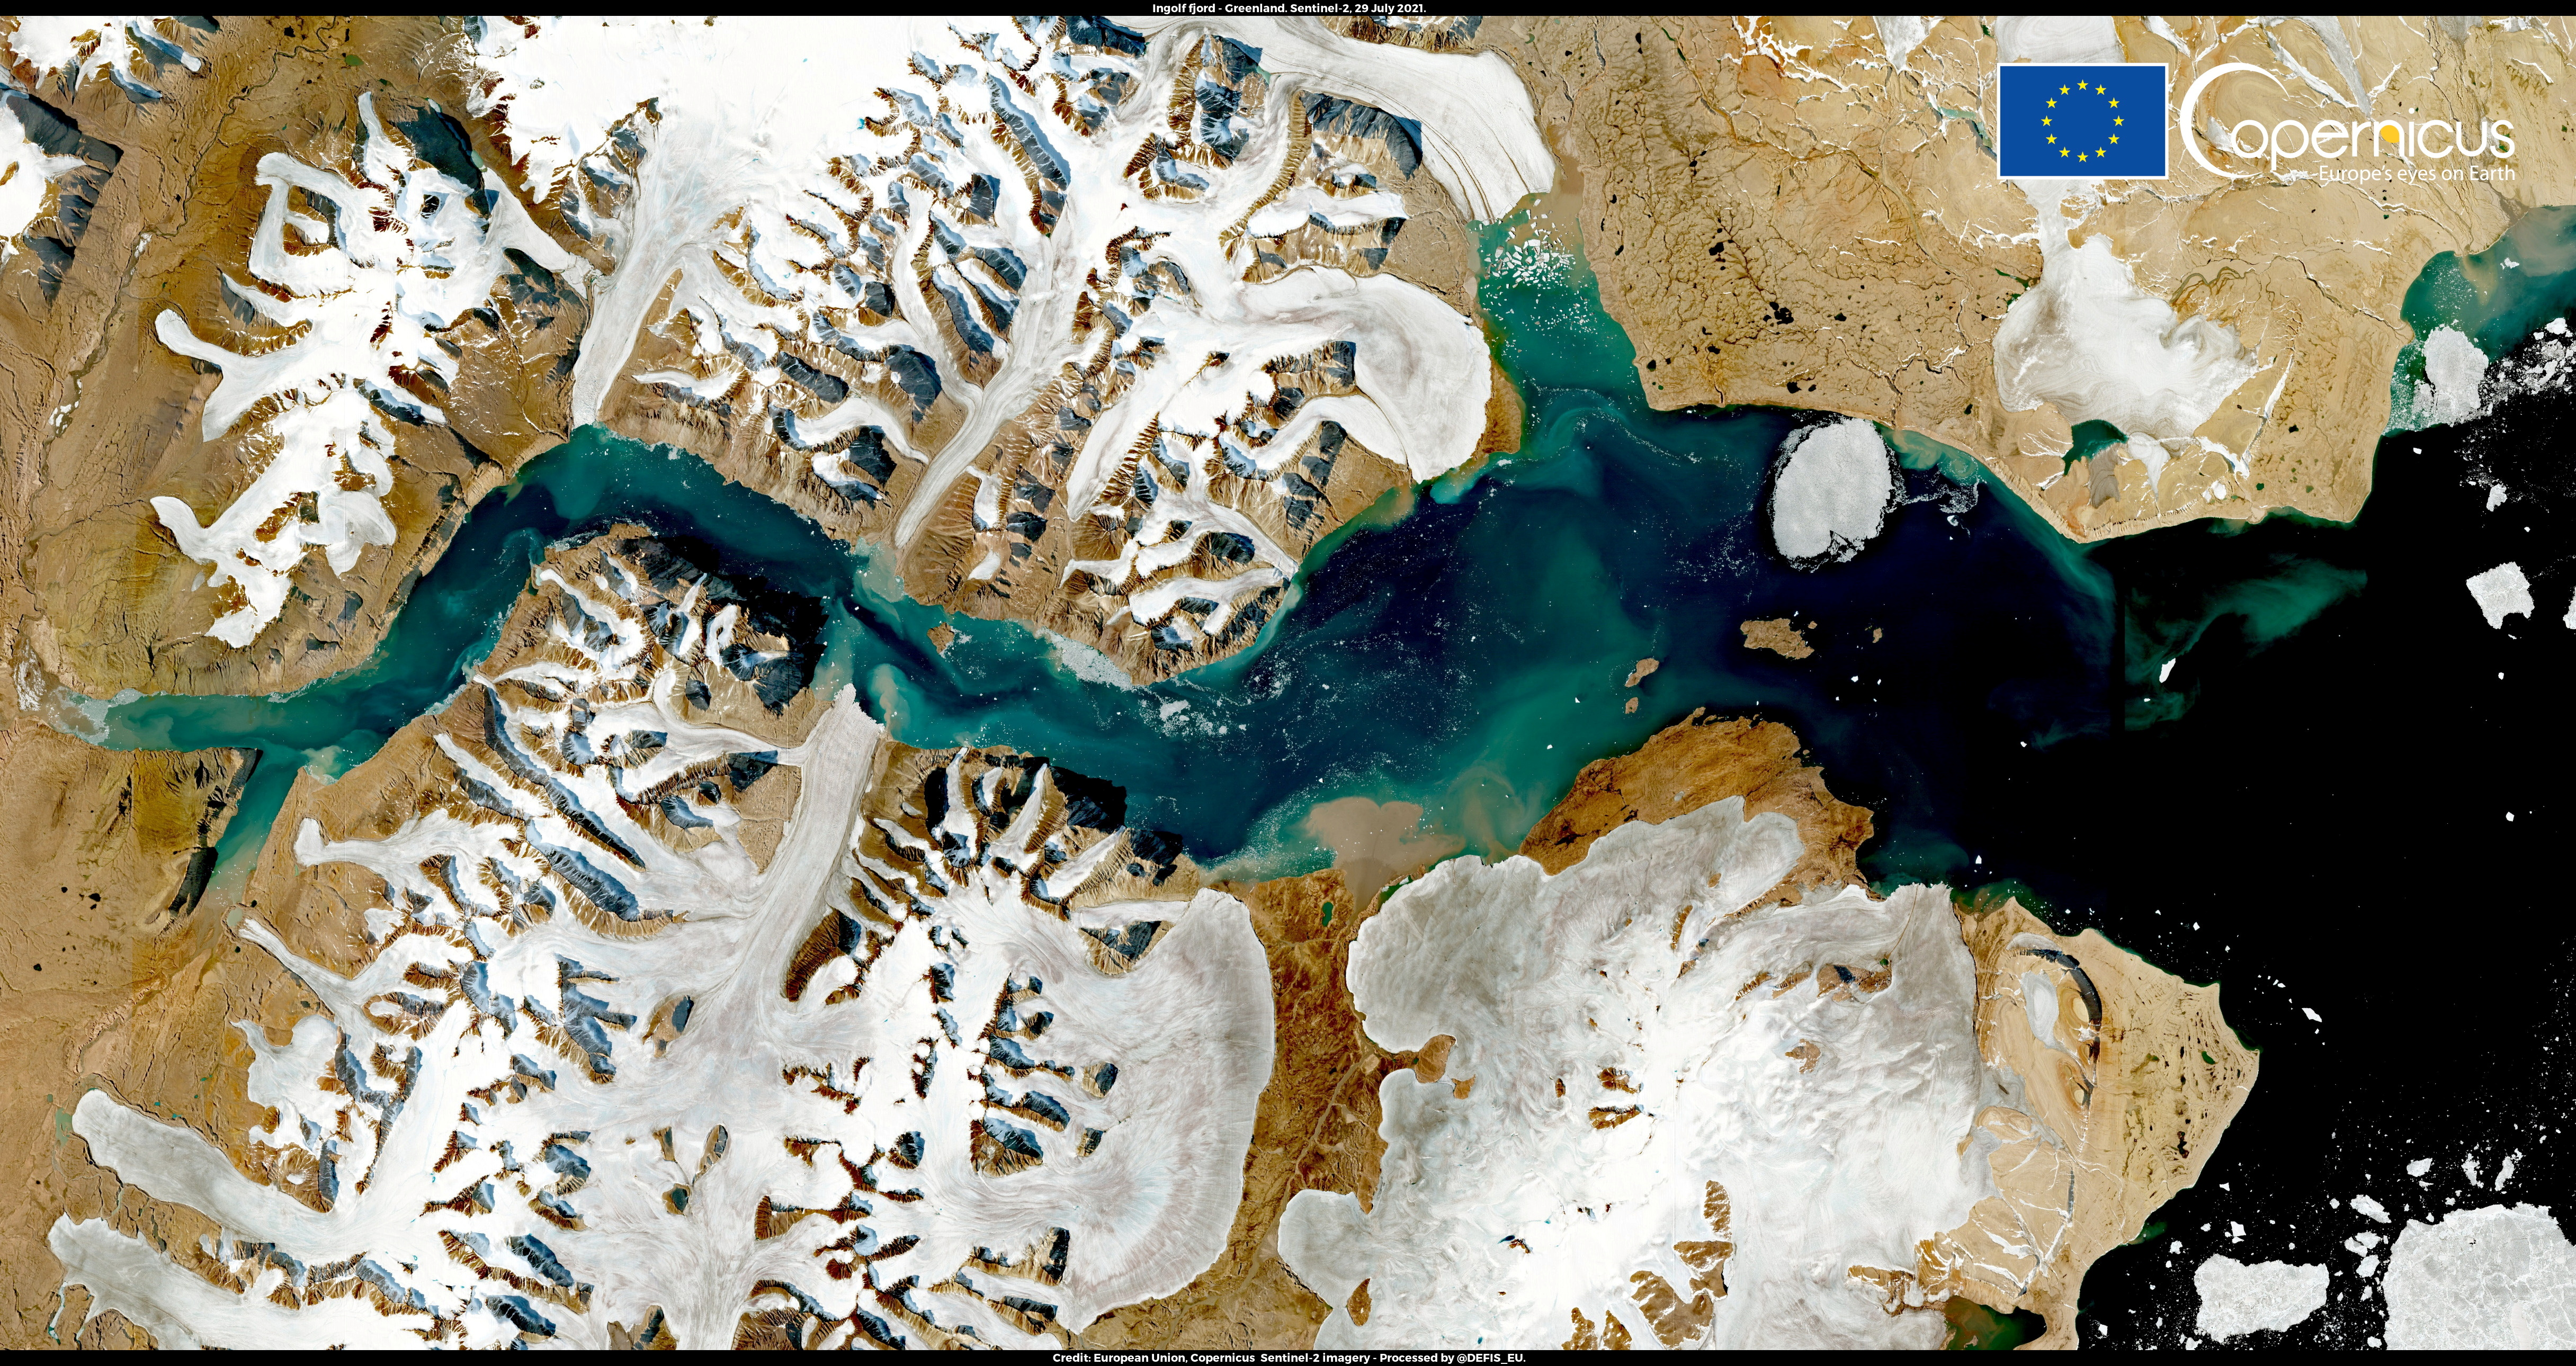 A satellite image shows Ingolf Fjord, Greenland July 29, 2021. Picture taken July 29, 2021. European Union, Copernicus Sentinel-2 imagery - Processed by @DEFIS_EU/Handout via REUTERS